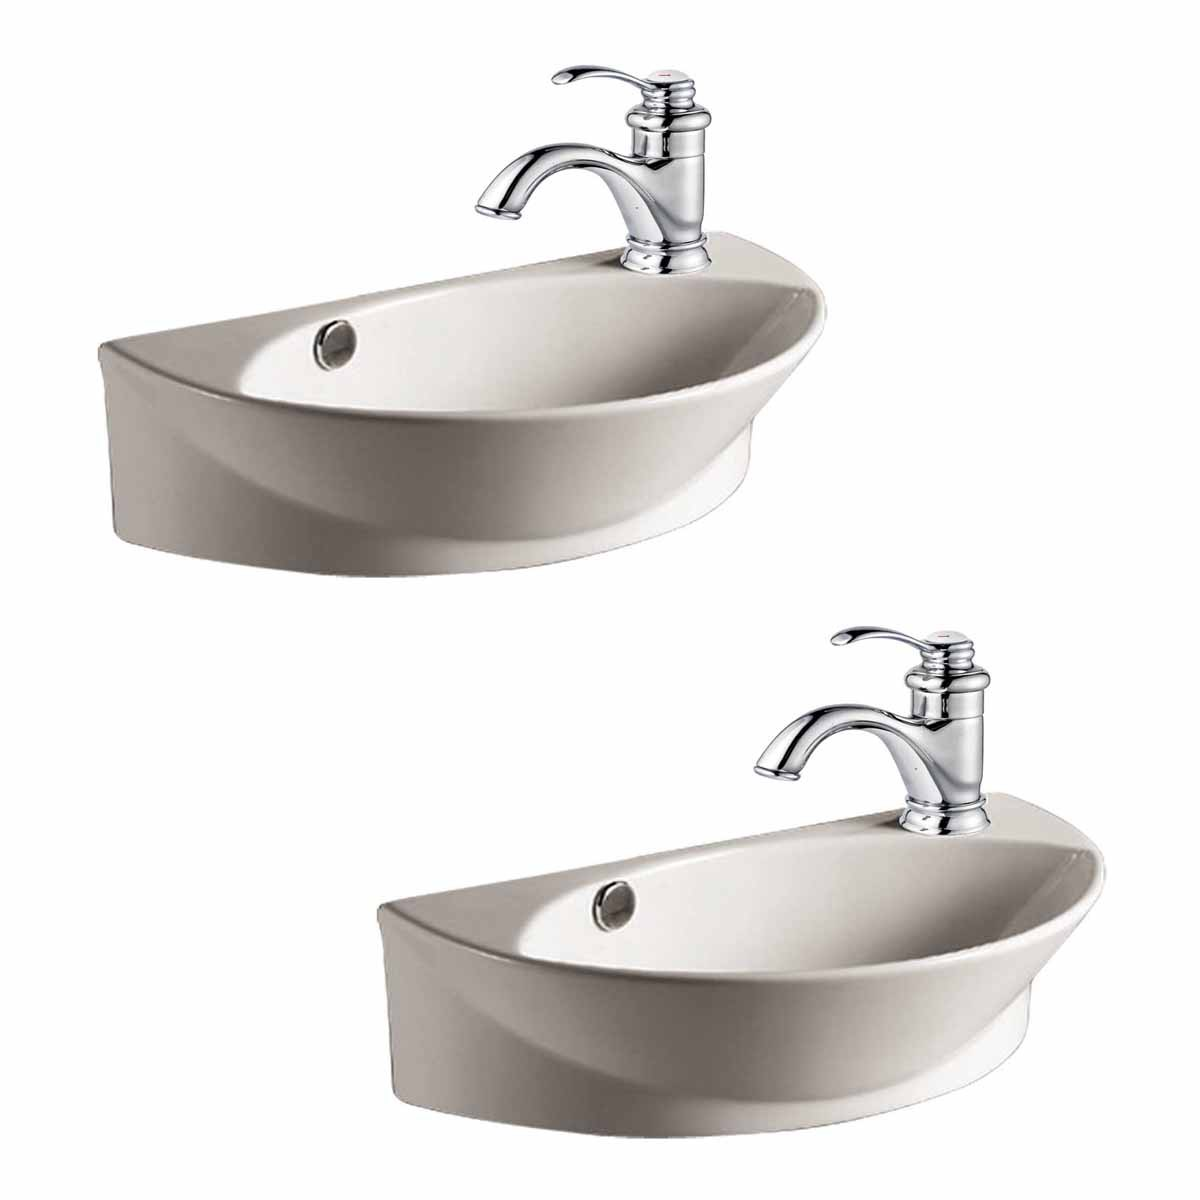 2 Wall Mount Porcelain Sink Single Hole Faucet Not Included